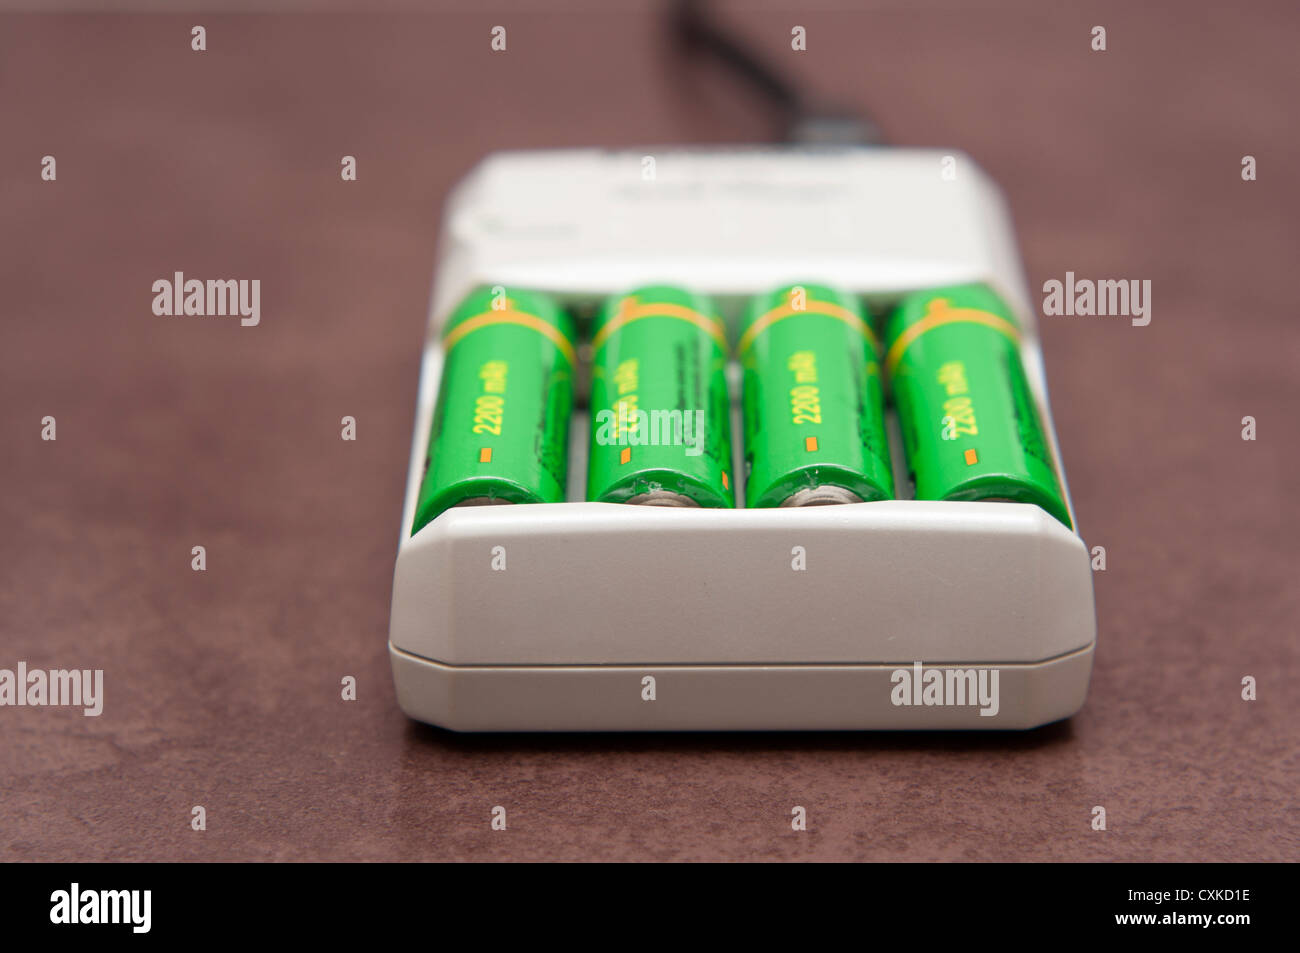 AA rechargeable batteries charging in mains electricity charger. - Stock Image